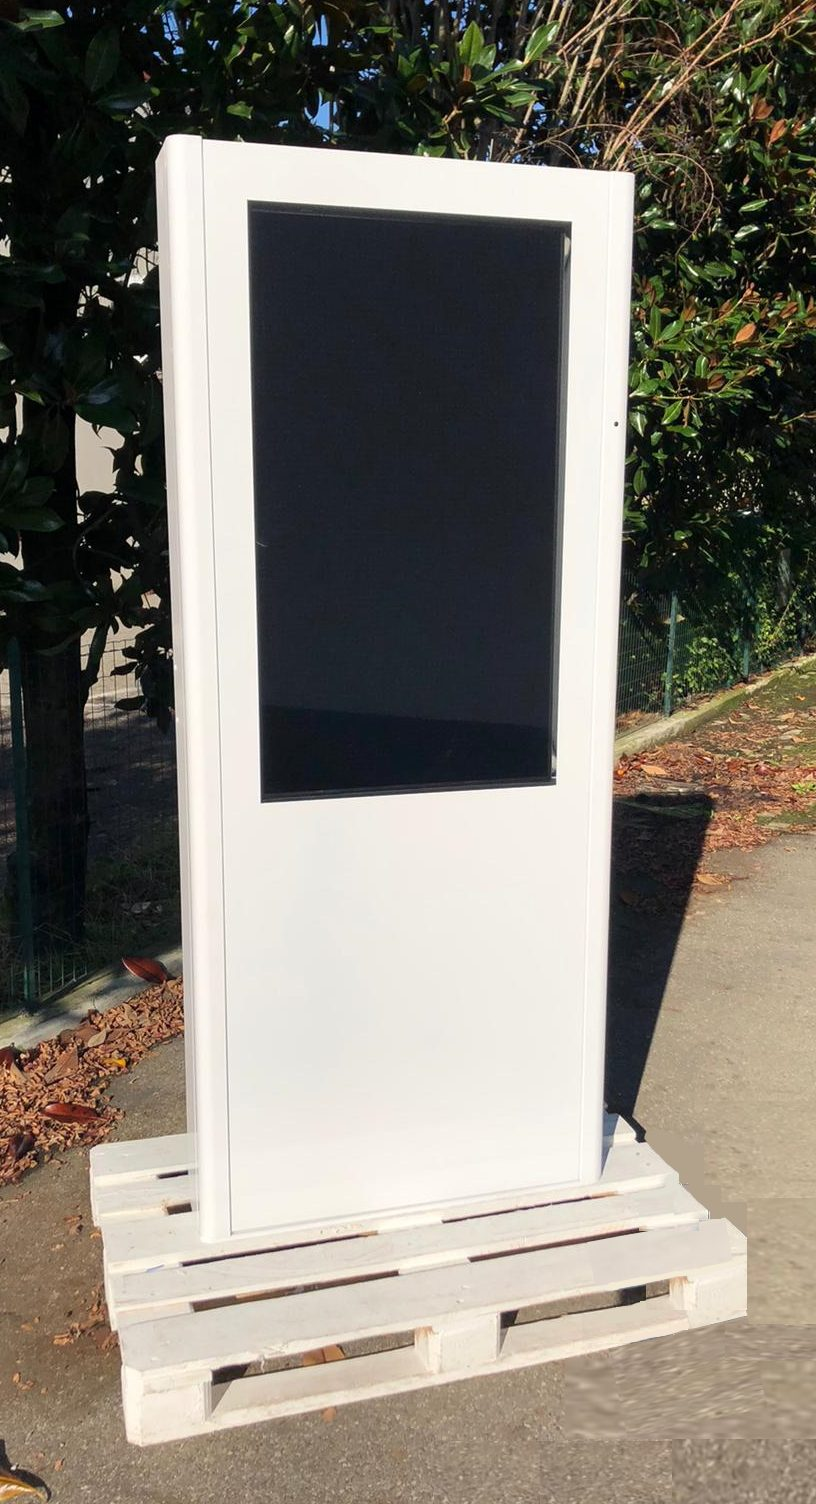 Totem outdoor HDDS Vision